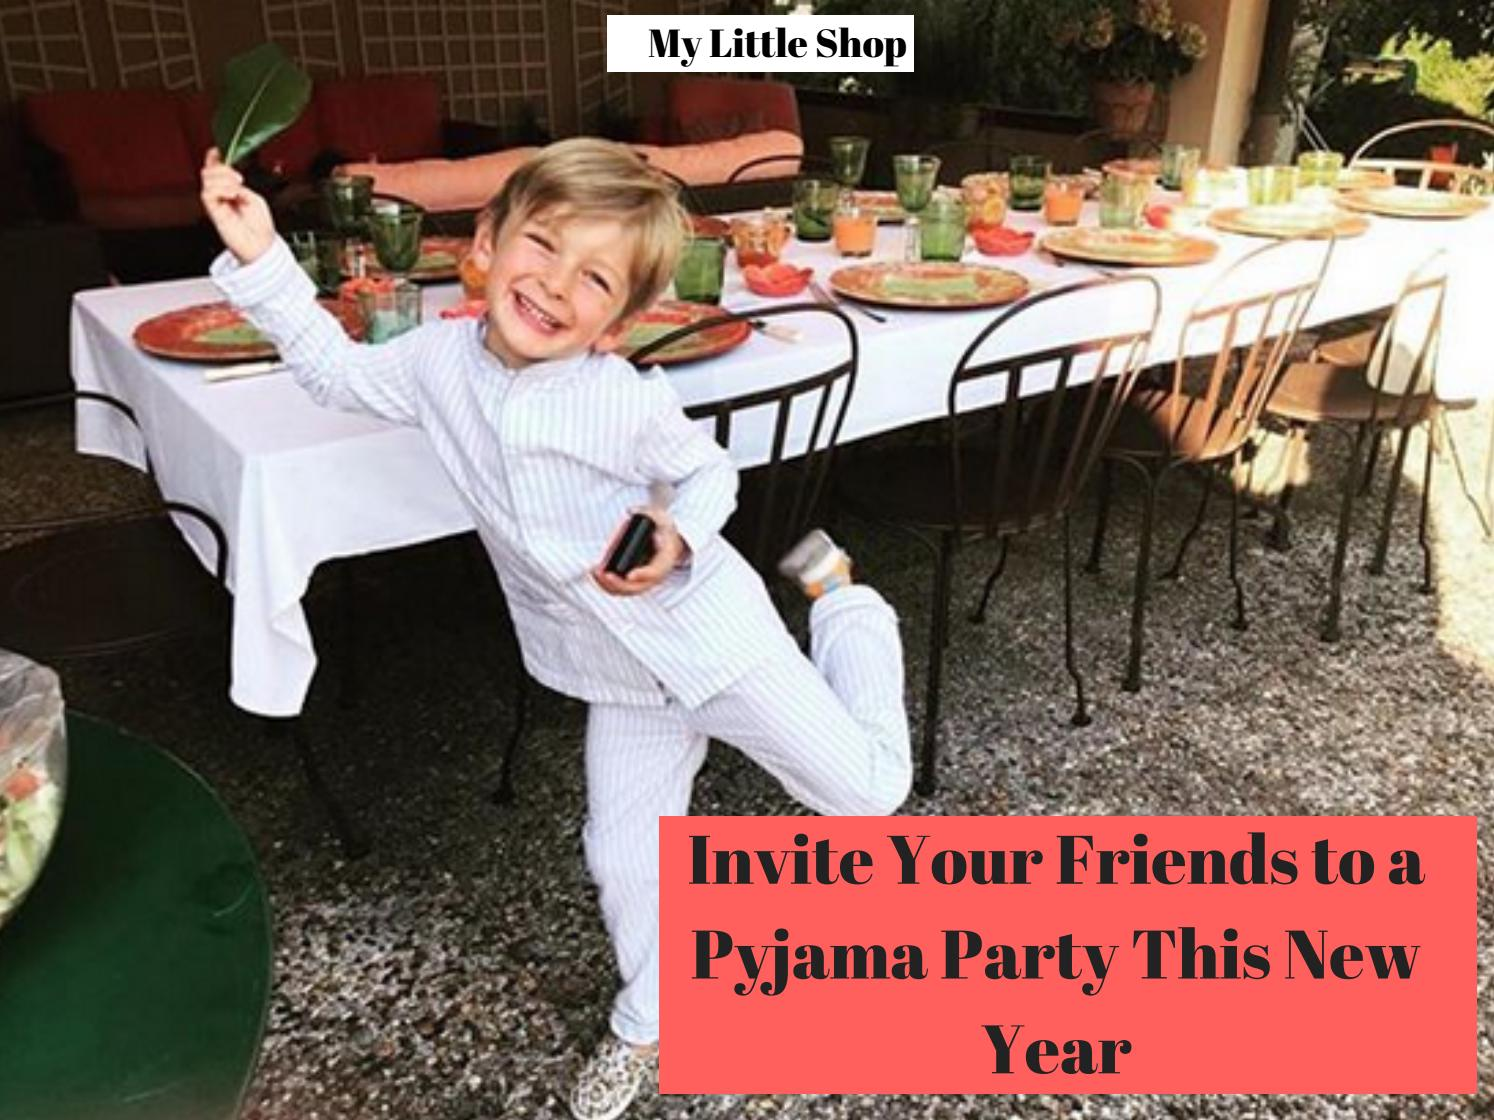 invite your friends to a pyjama party this new year by my little shop issuu